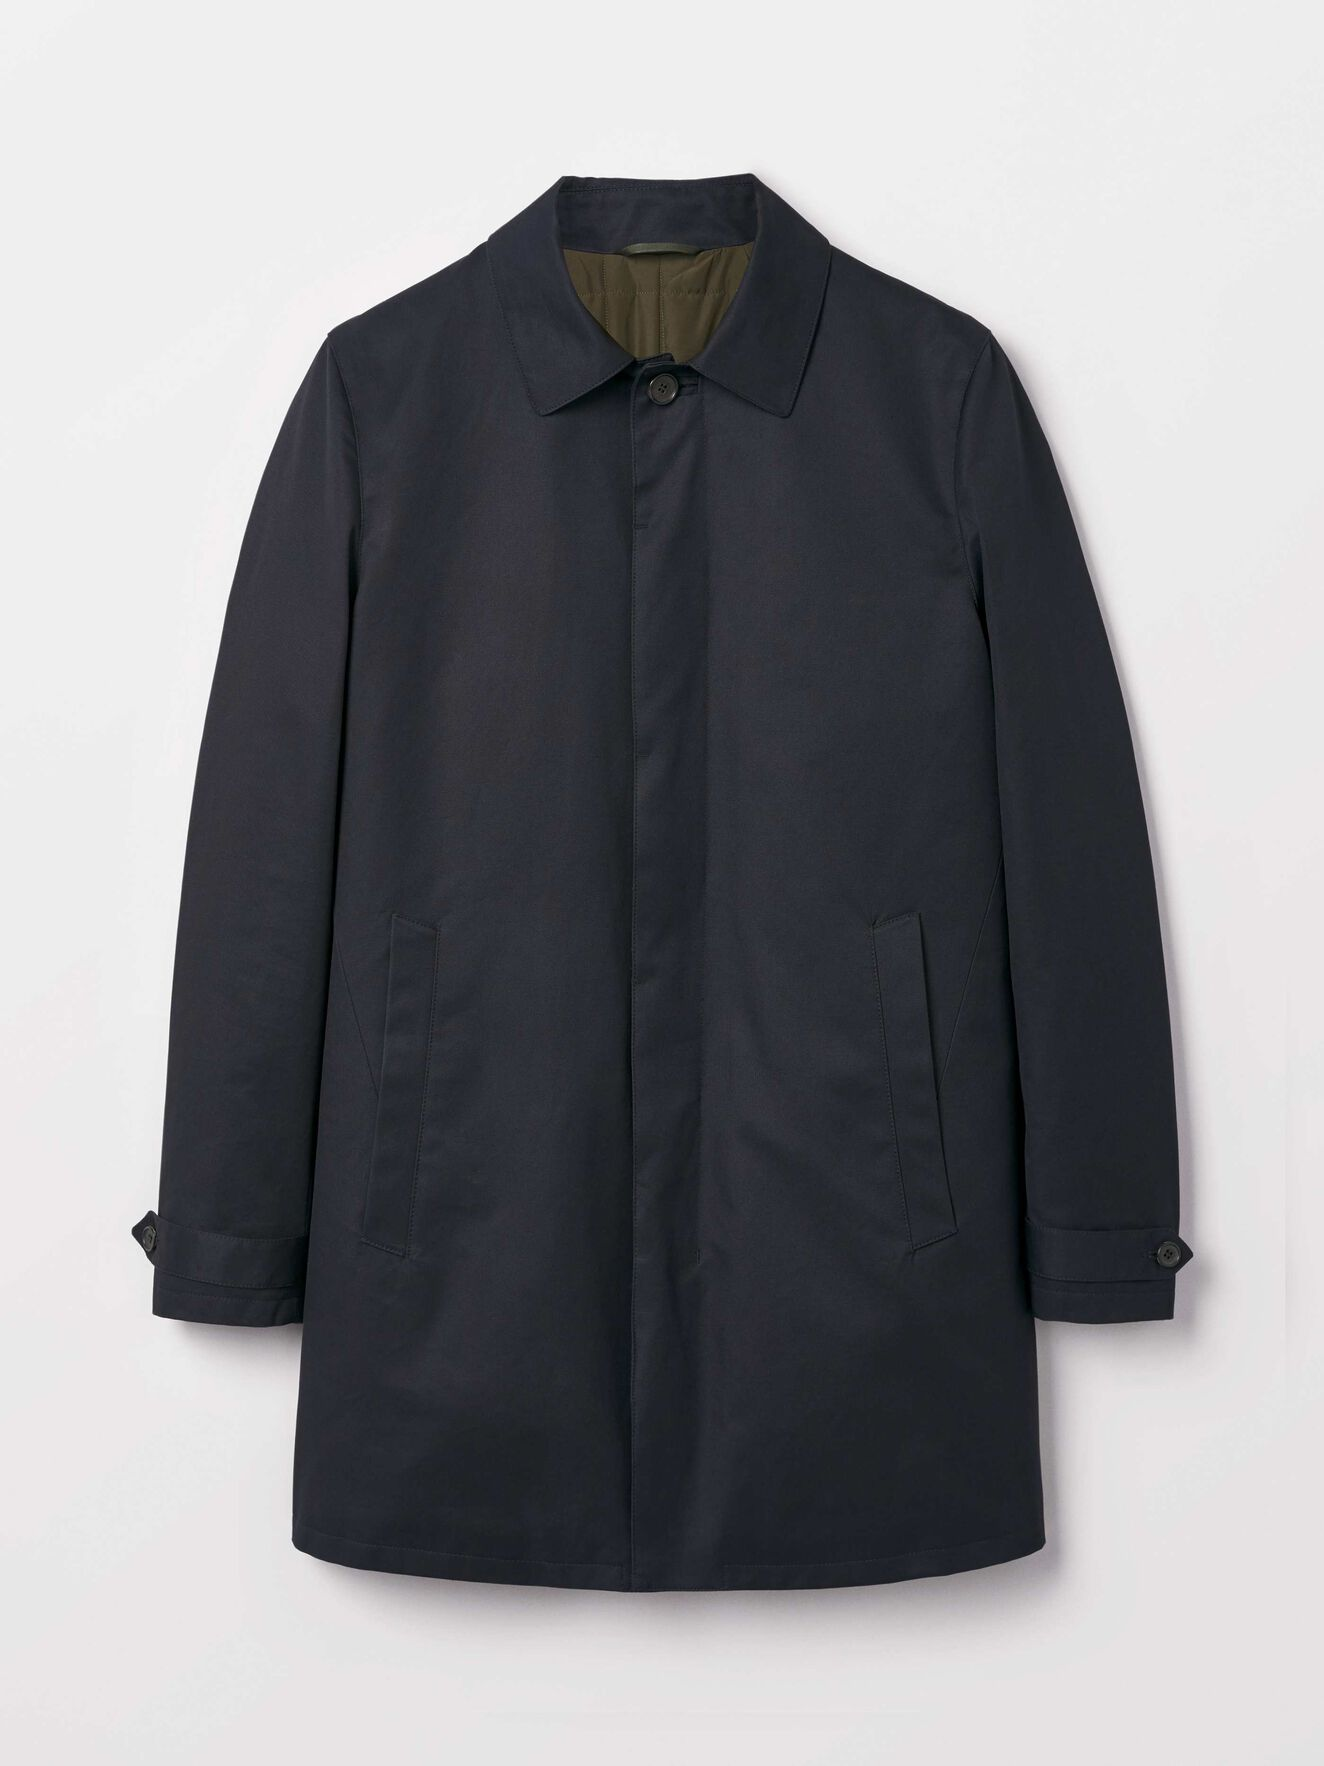 Caled Coat in Light Ink from Tiger of Sweden